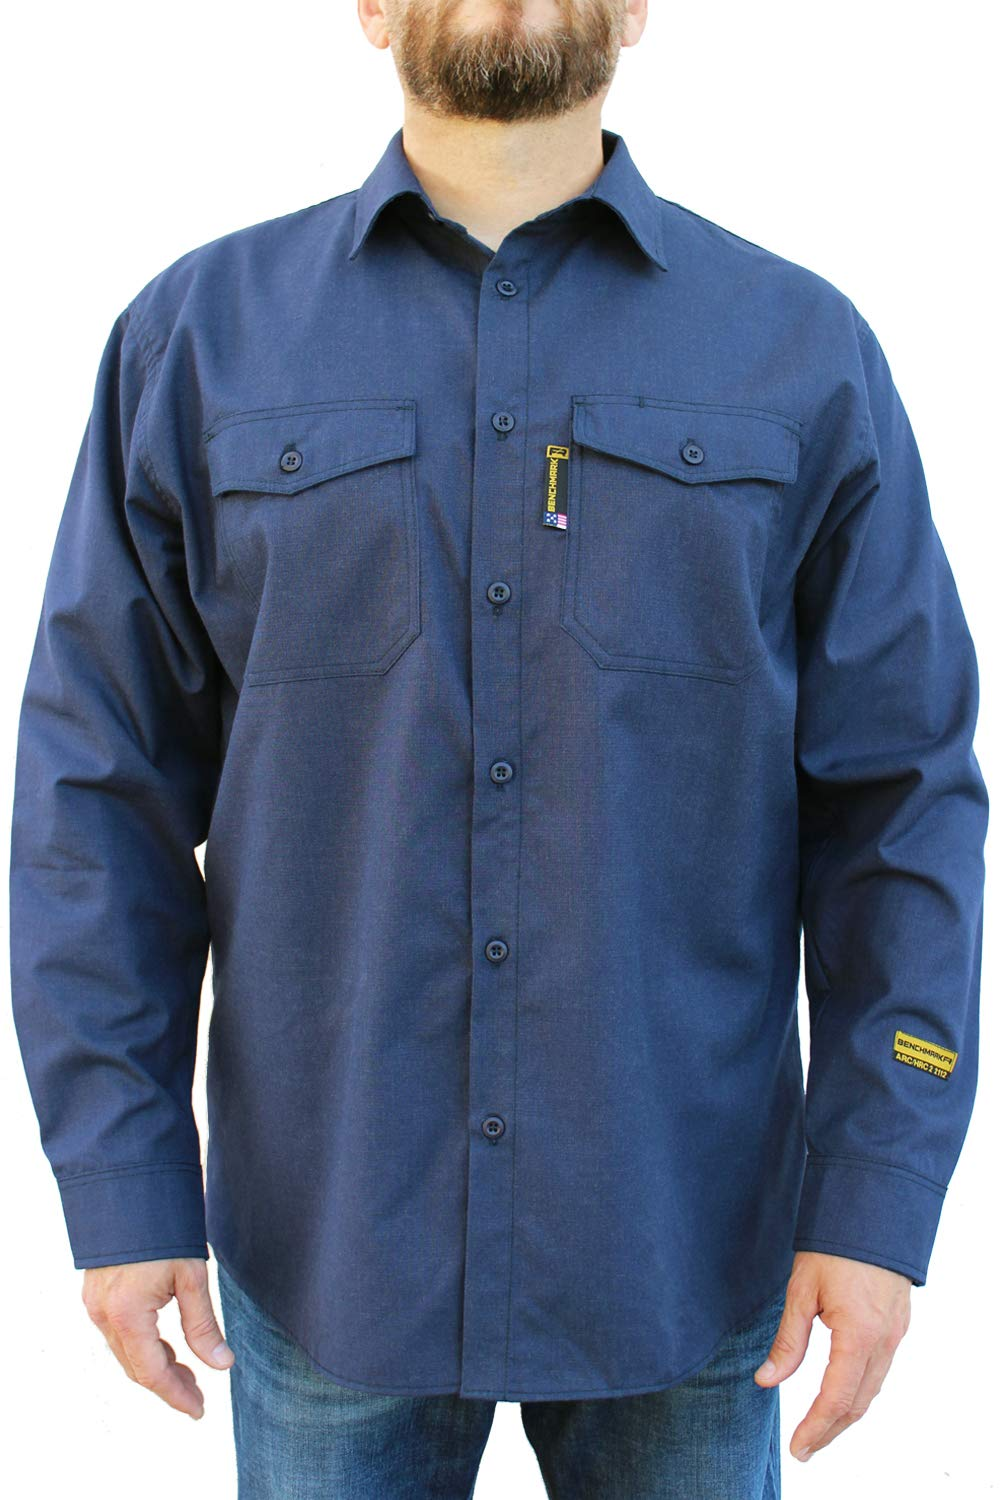 Benchmark FR Silver Bullet, 5.1 oz Ultra Lightweight FR Shirt, NPFA 2112 & CAT 2, Moisture Wicking, Men's FRC with 9 Cal rating, Made in USA, Advanced FR Materials, Navy, Large by Benchmark FR (Image #2)